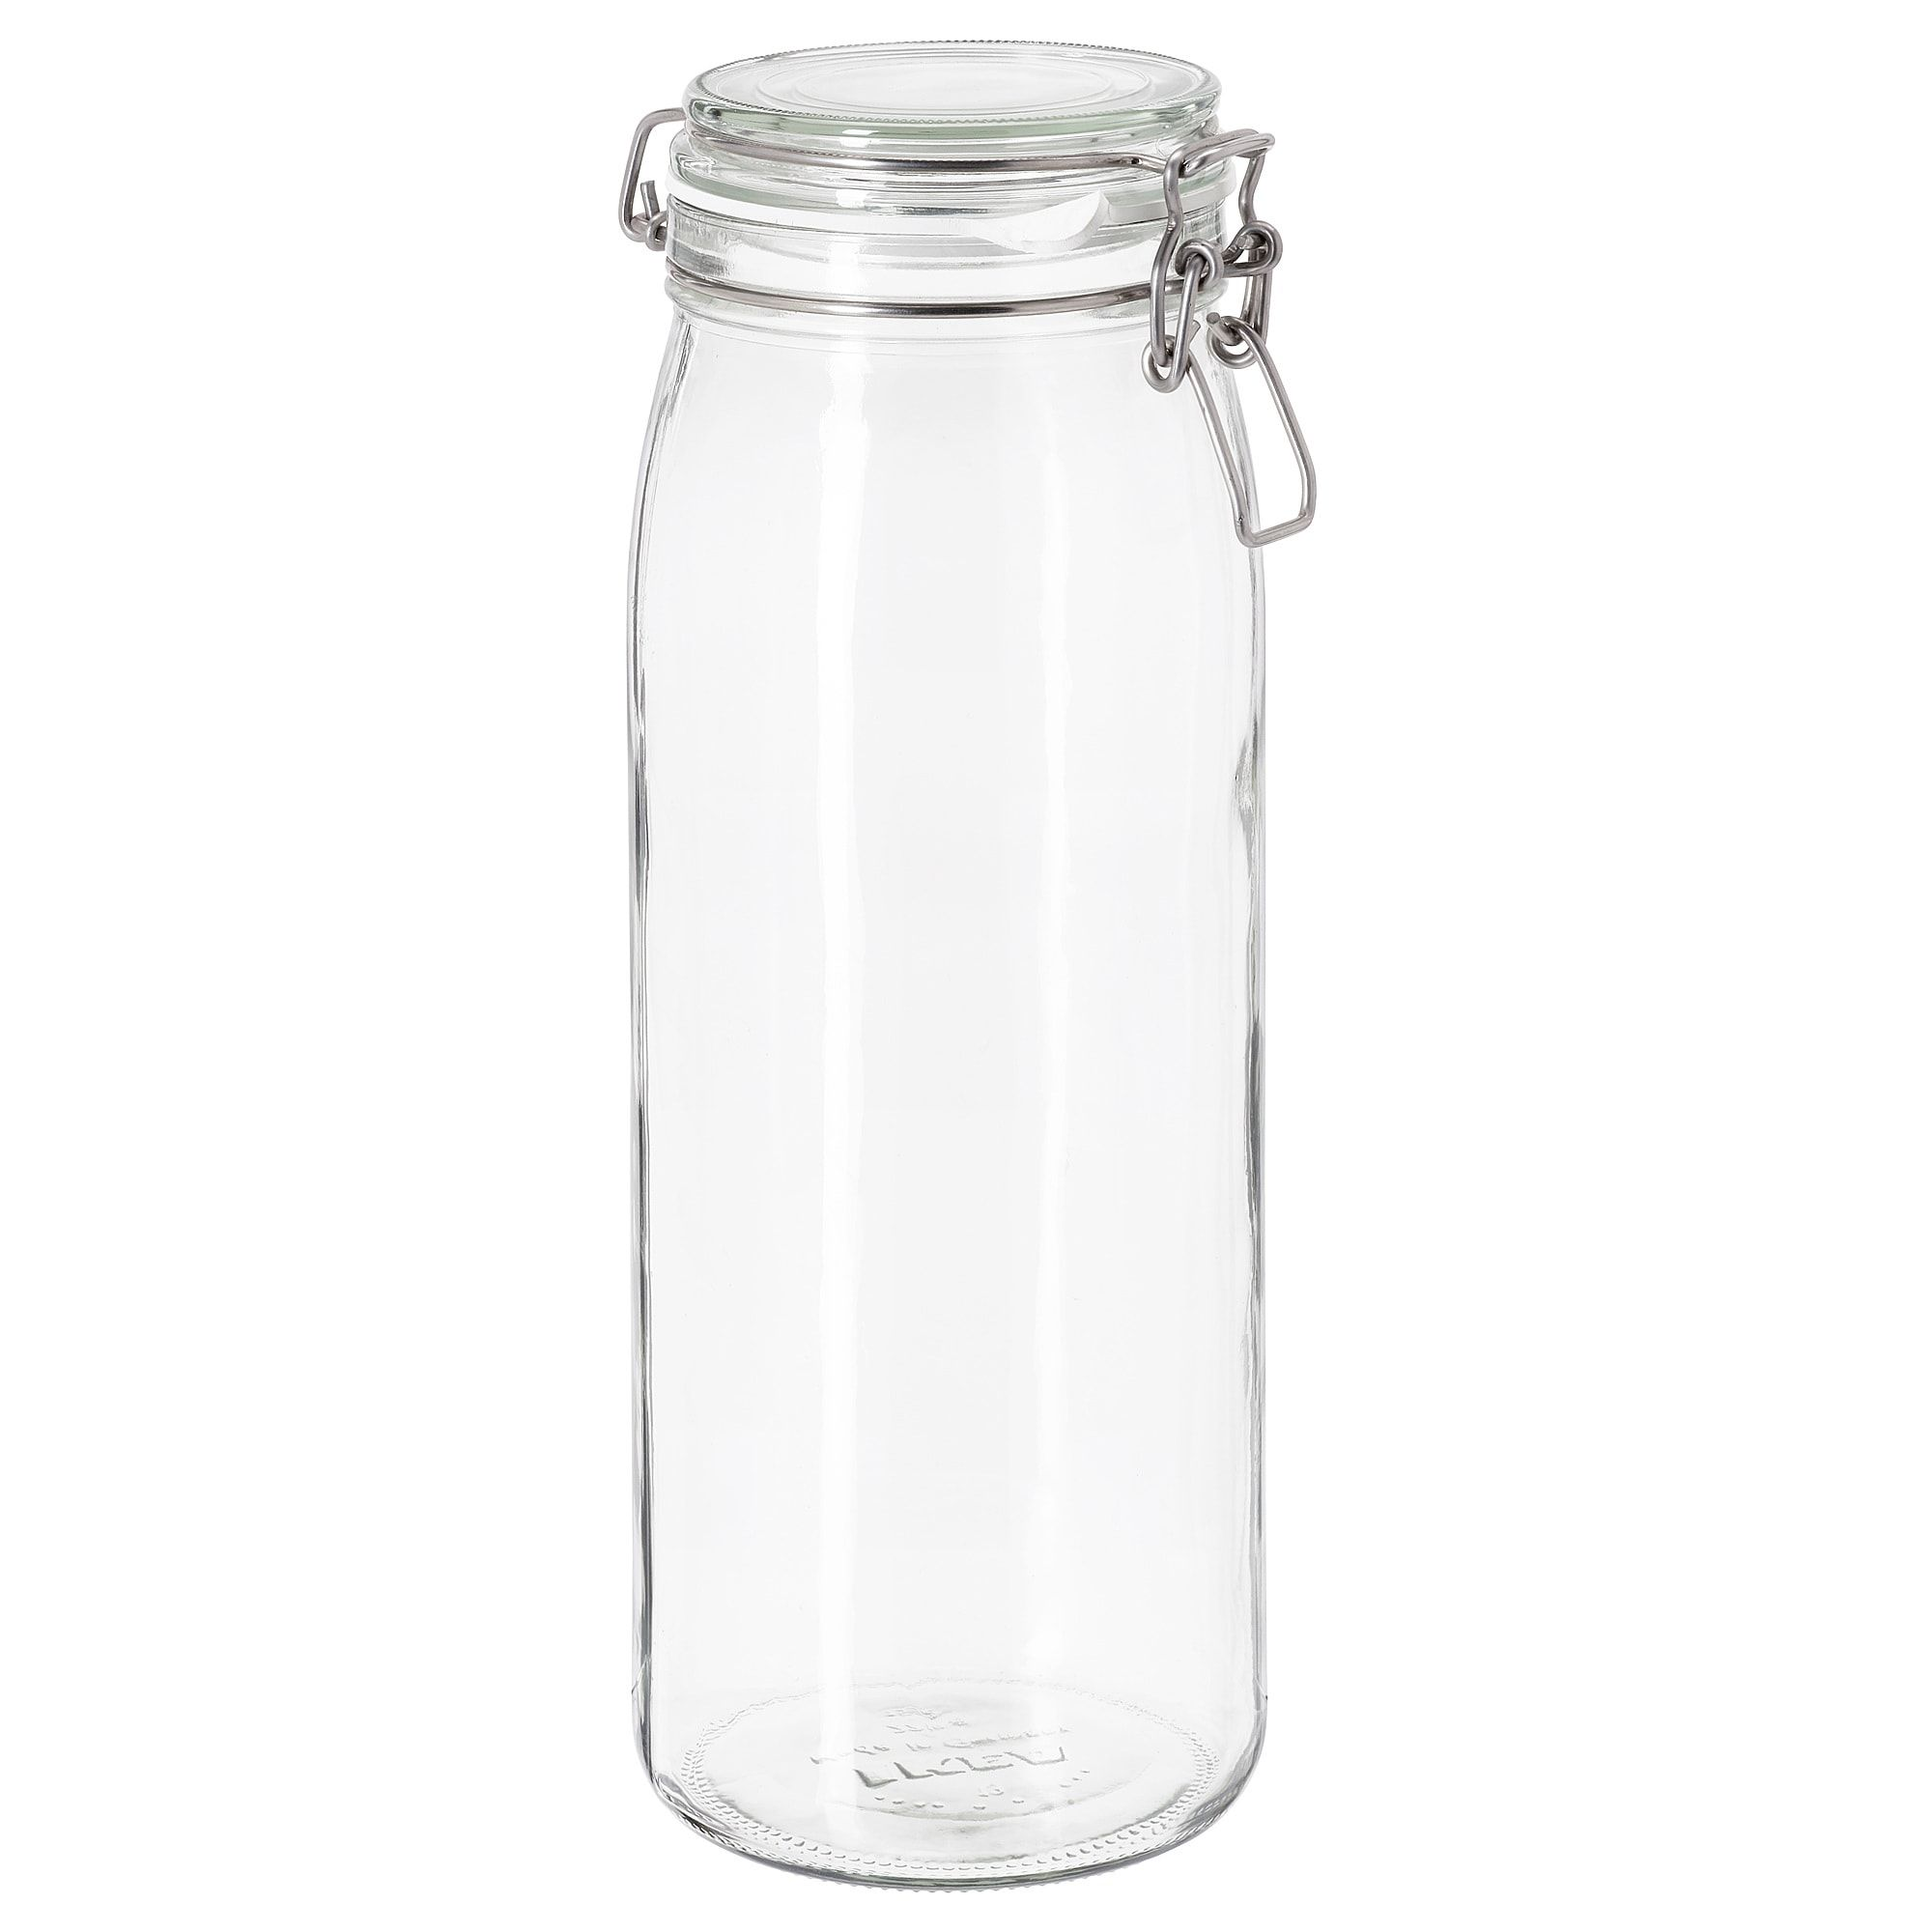 IKEA KORKEN Masson Jar with Lid Clear Glass Food Storage with Rubber Seal